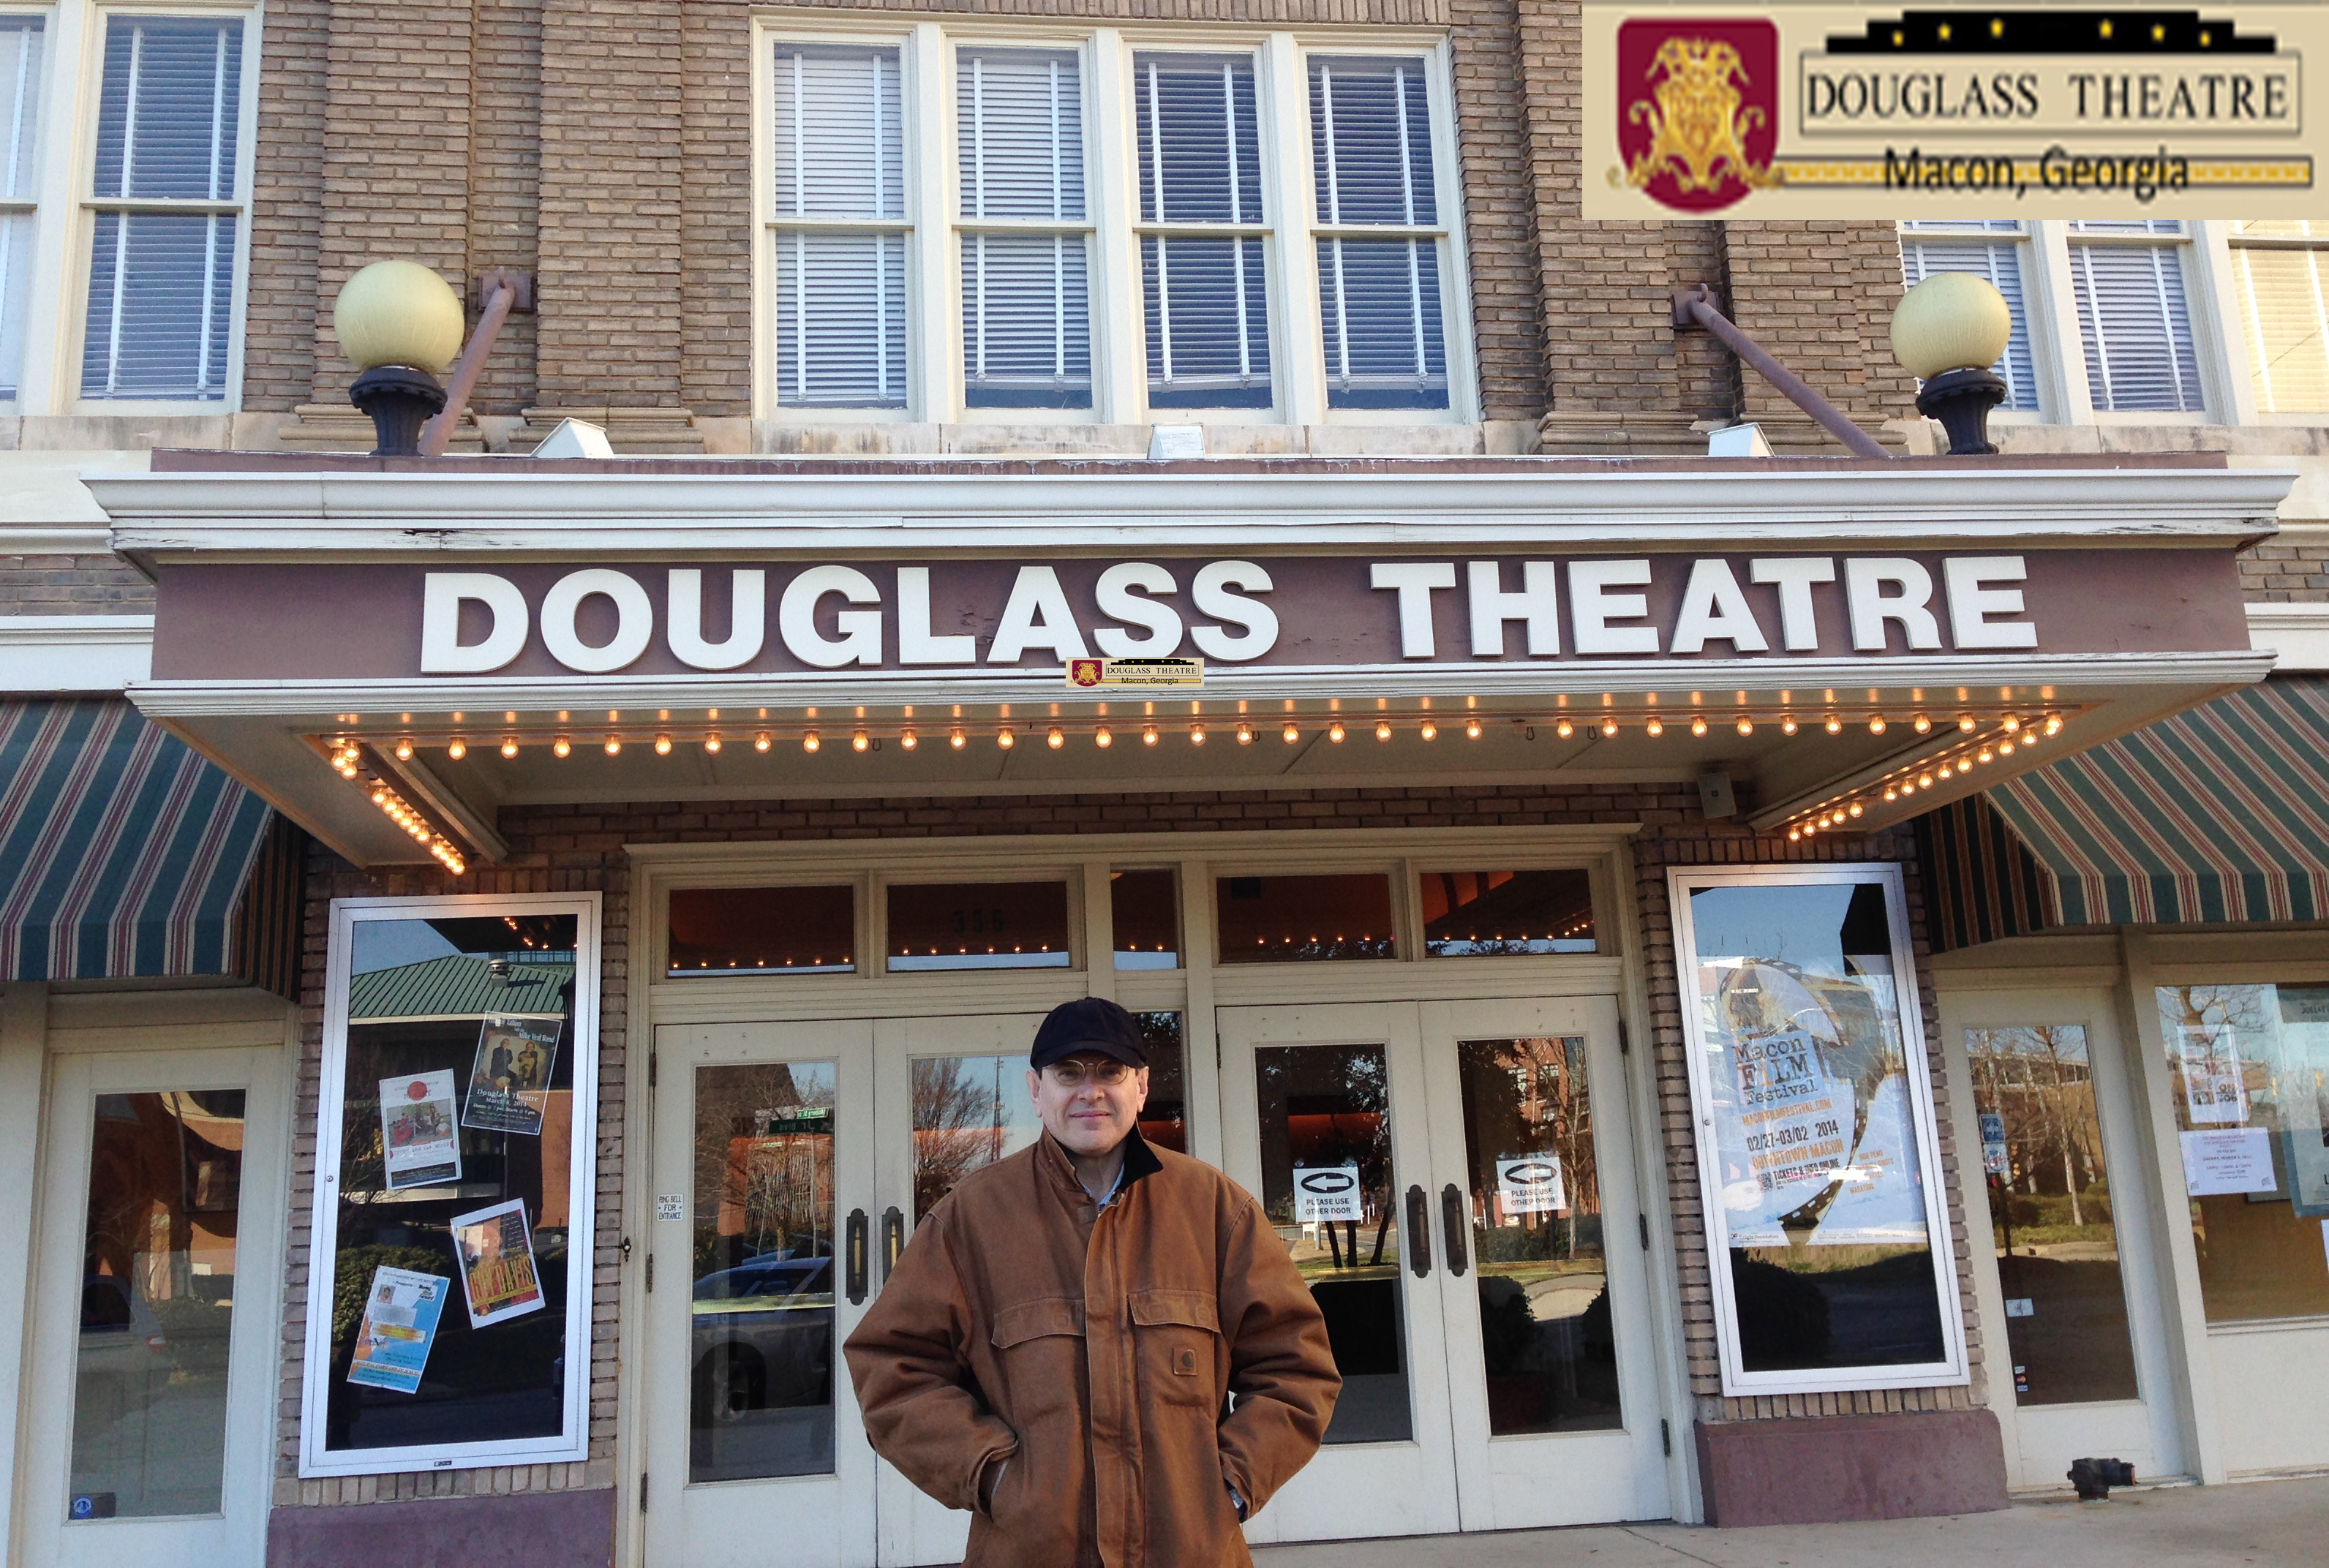 GUY DAVIS & FABRIZIO POGGI 2014 USA TOUR HISTORIC DOUGLAS THEATRE Macon, Georgia